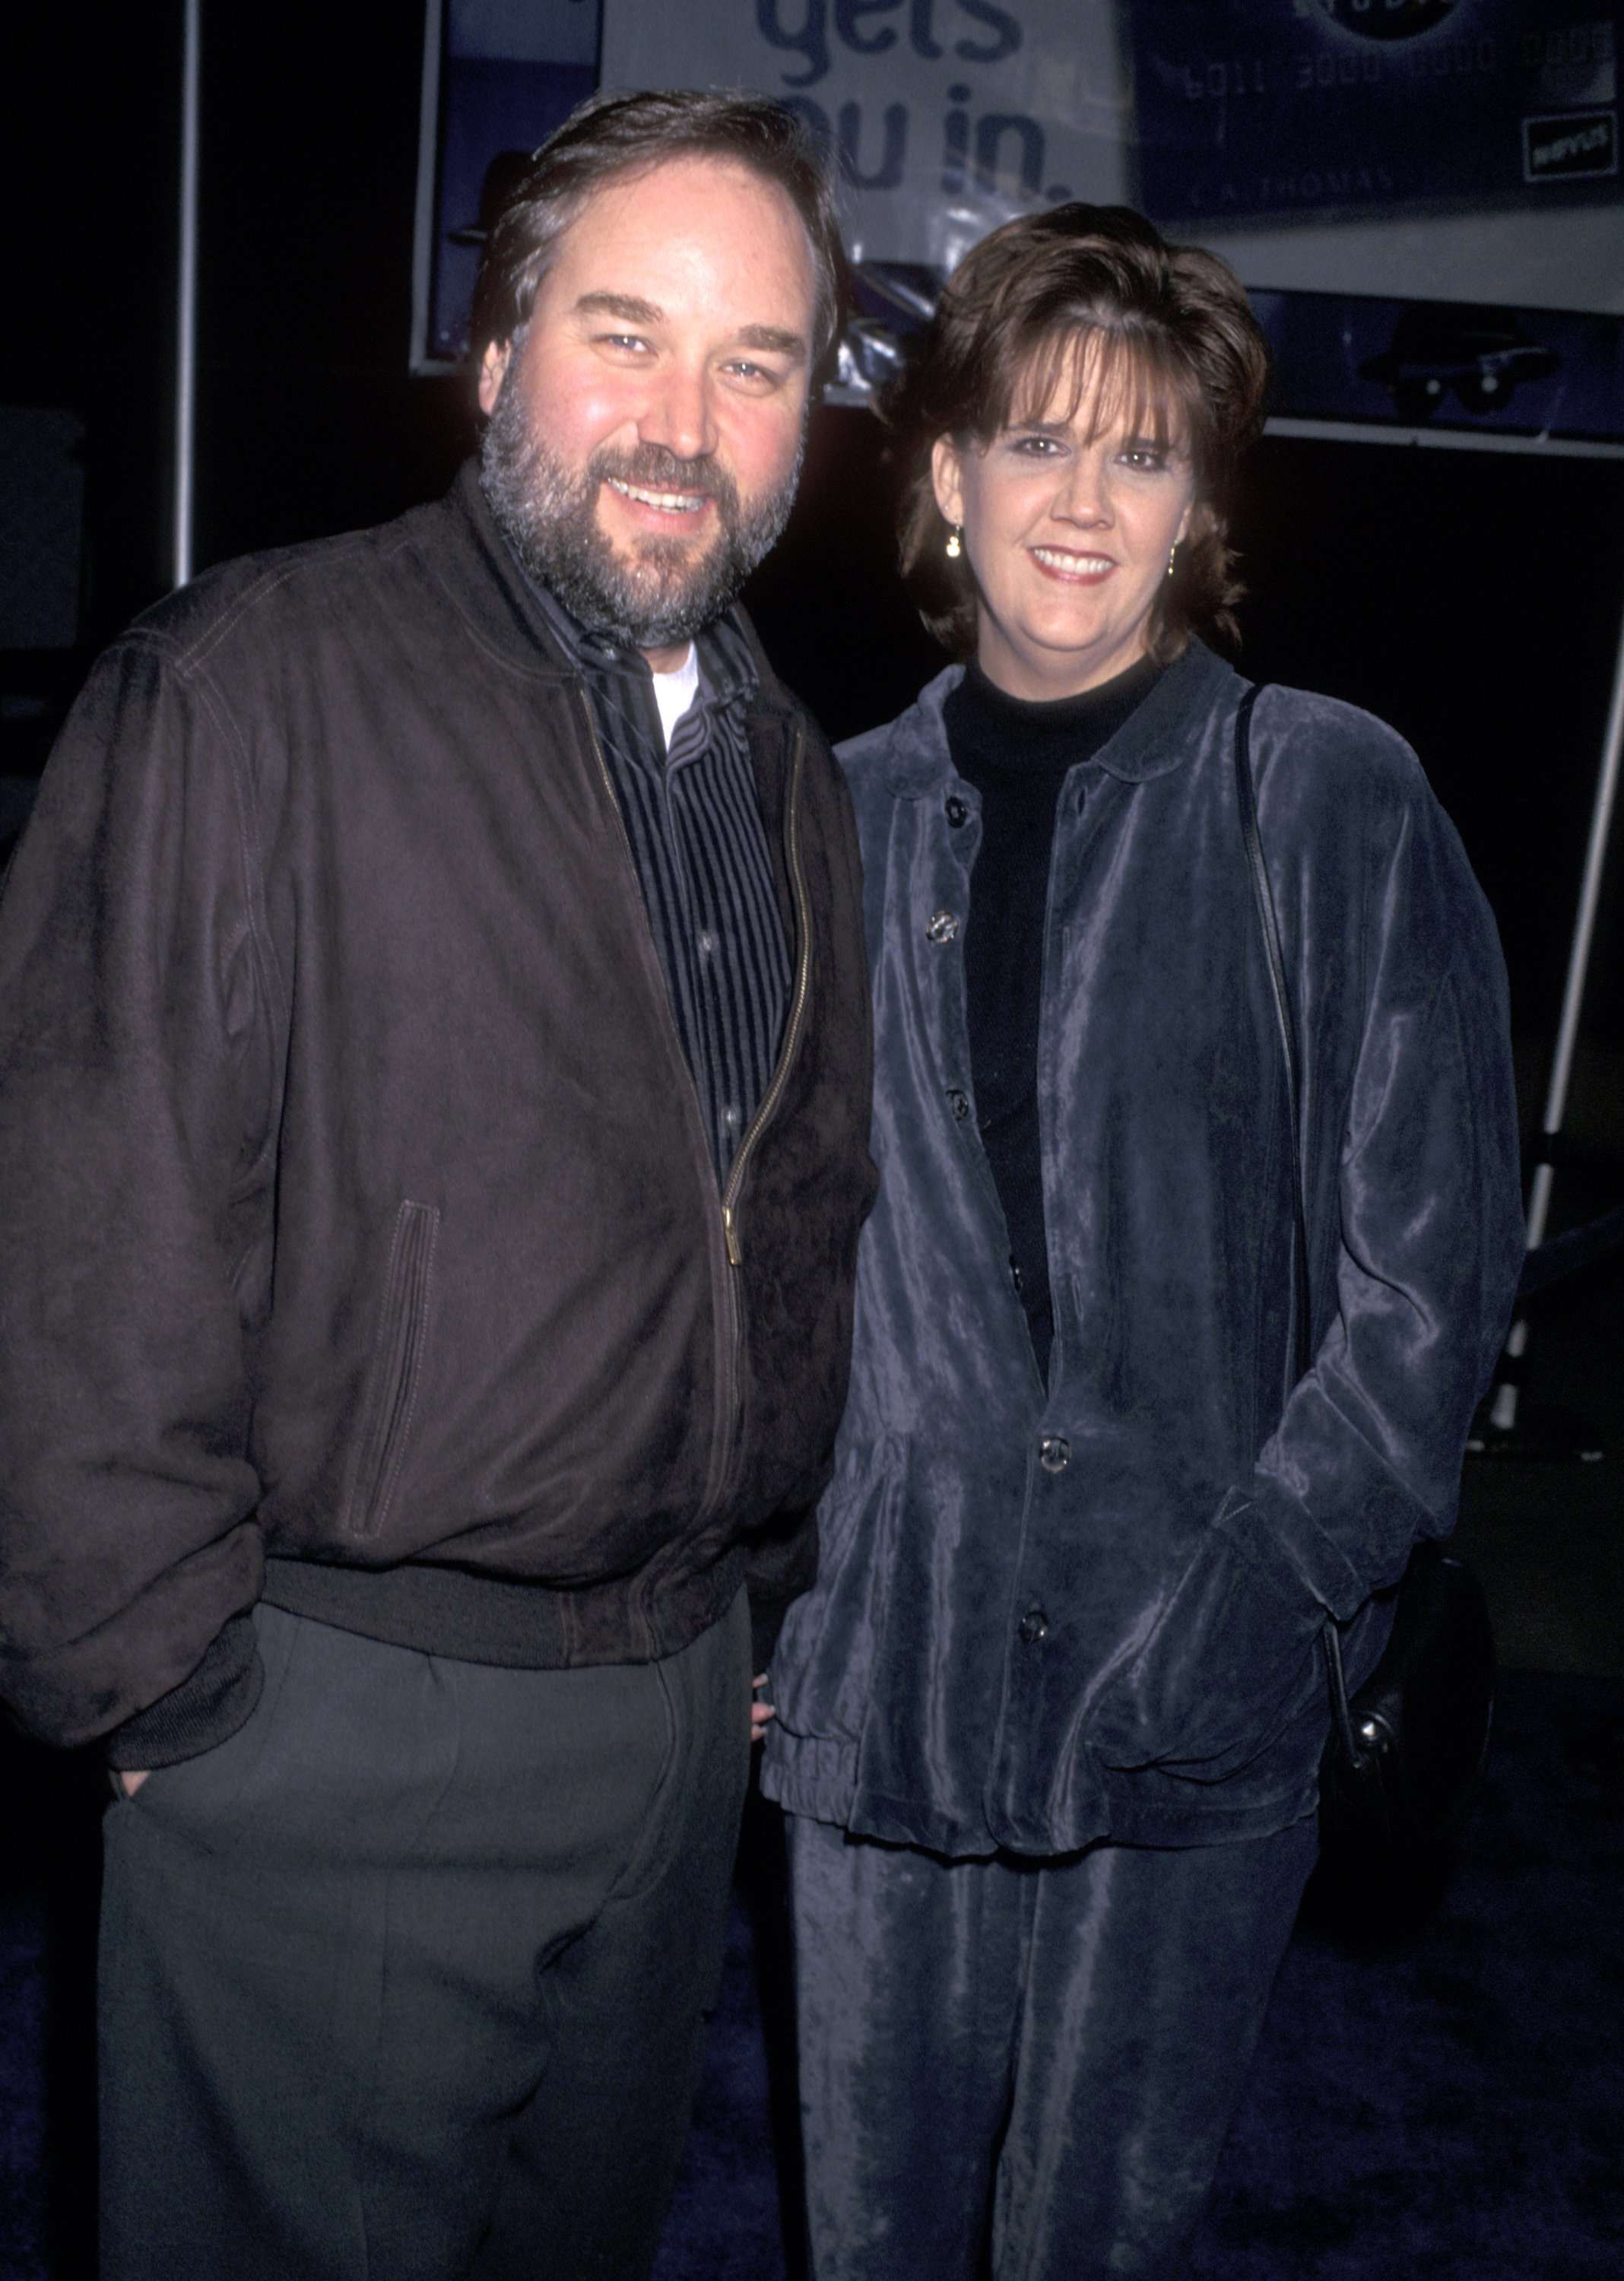 Richard Karn and wife Tudi Roche attend the 'Blues Brothers 2000' Universal City Premiere on January 31, 1998 at Universal Amphitheatre | Photo: Getty Images